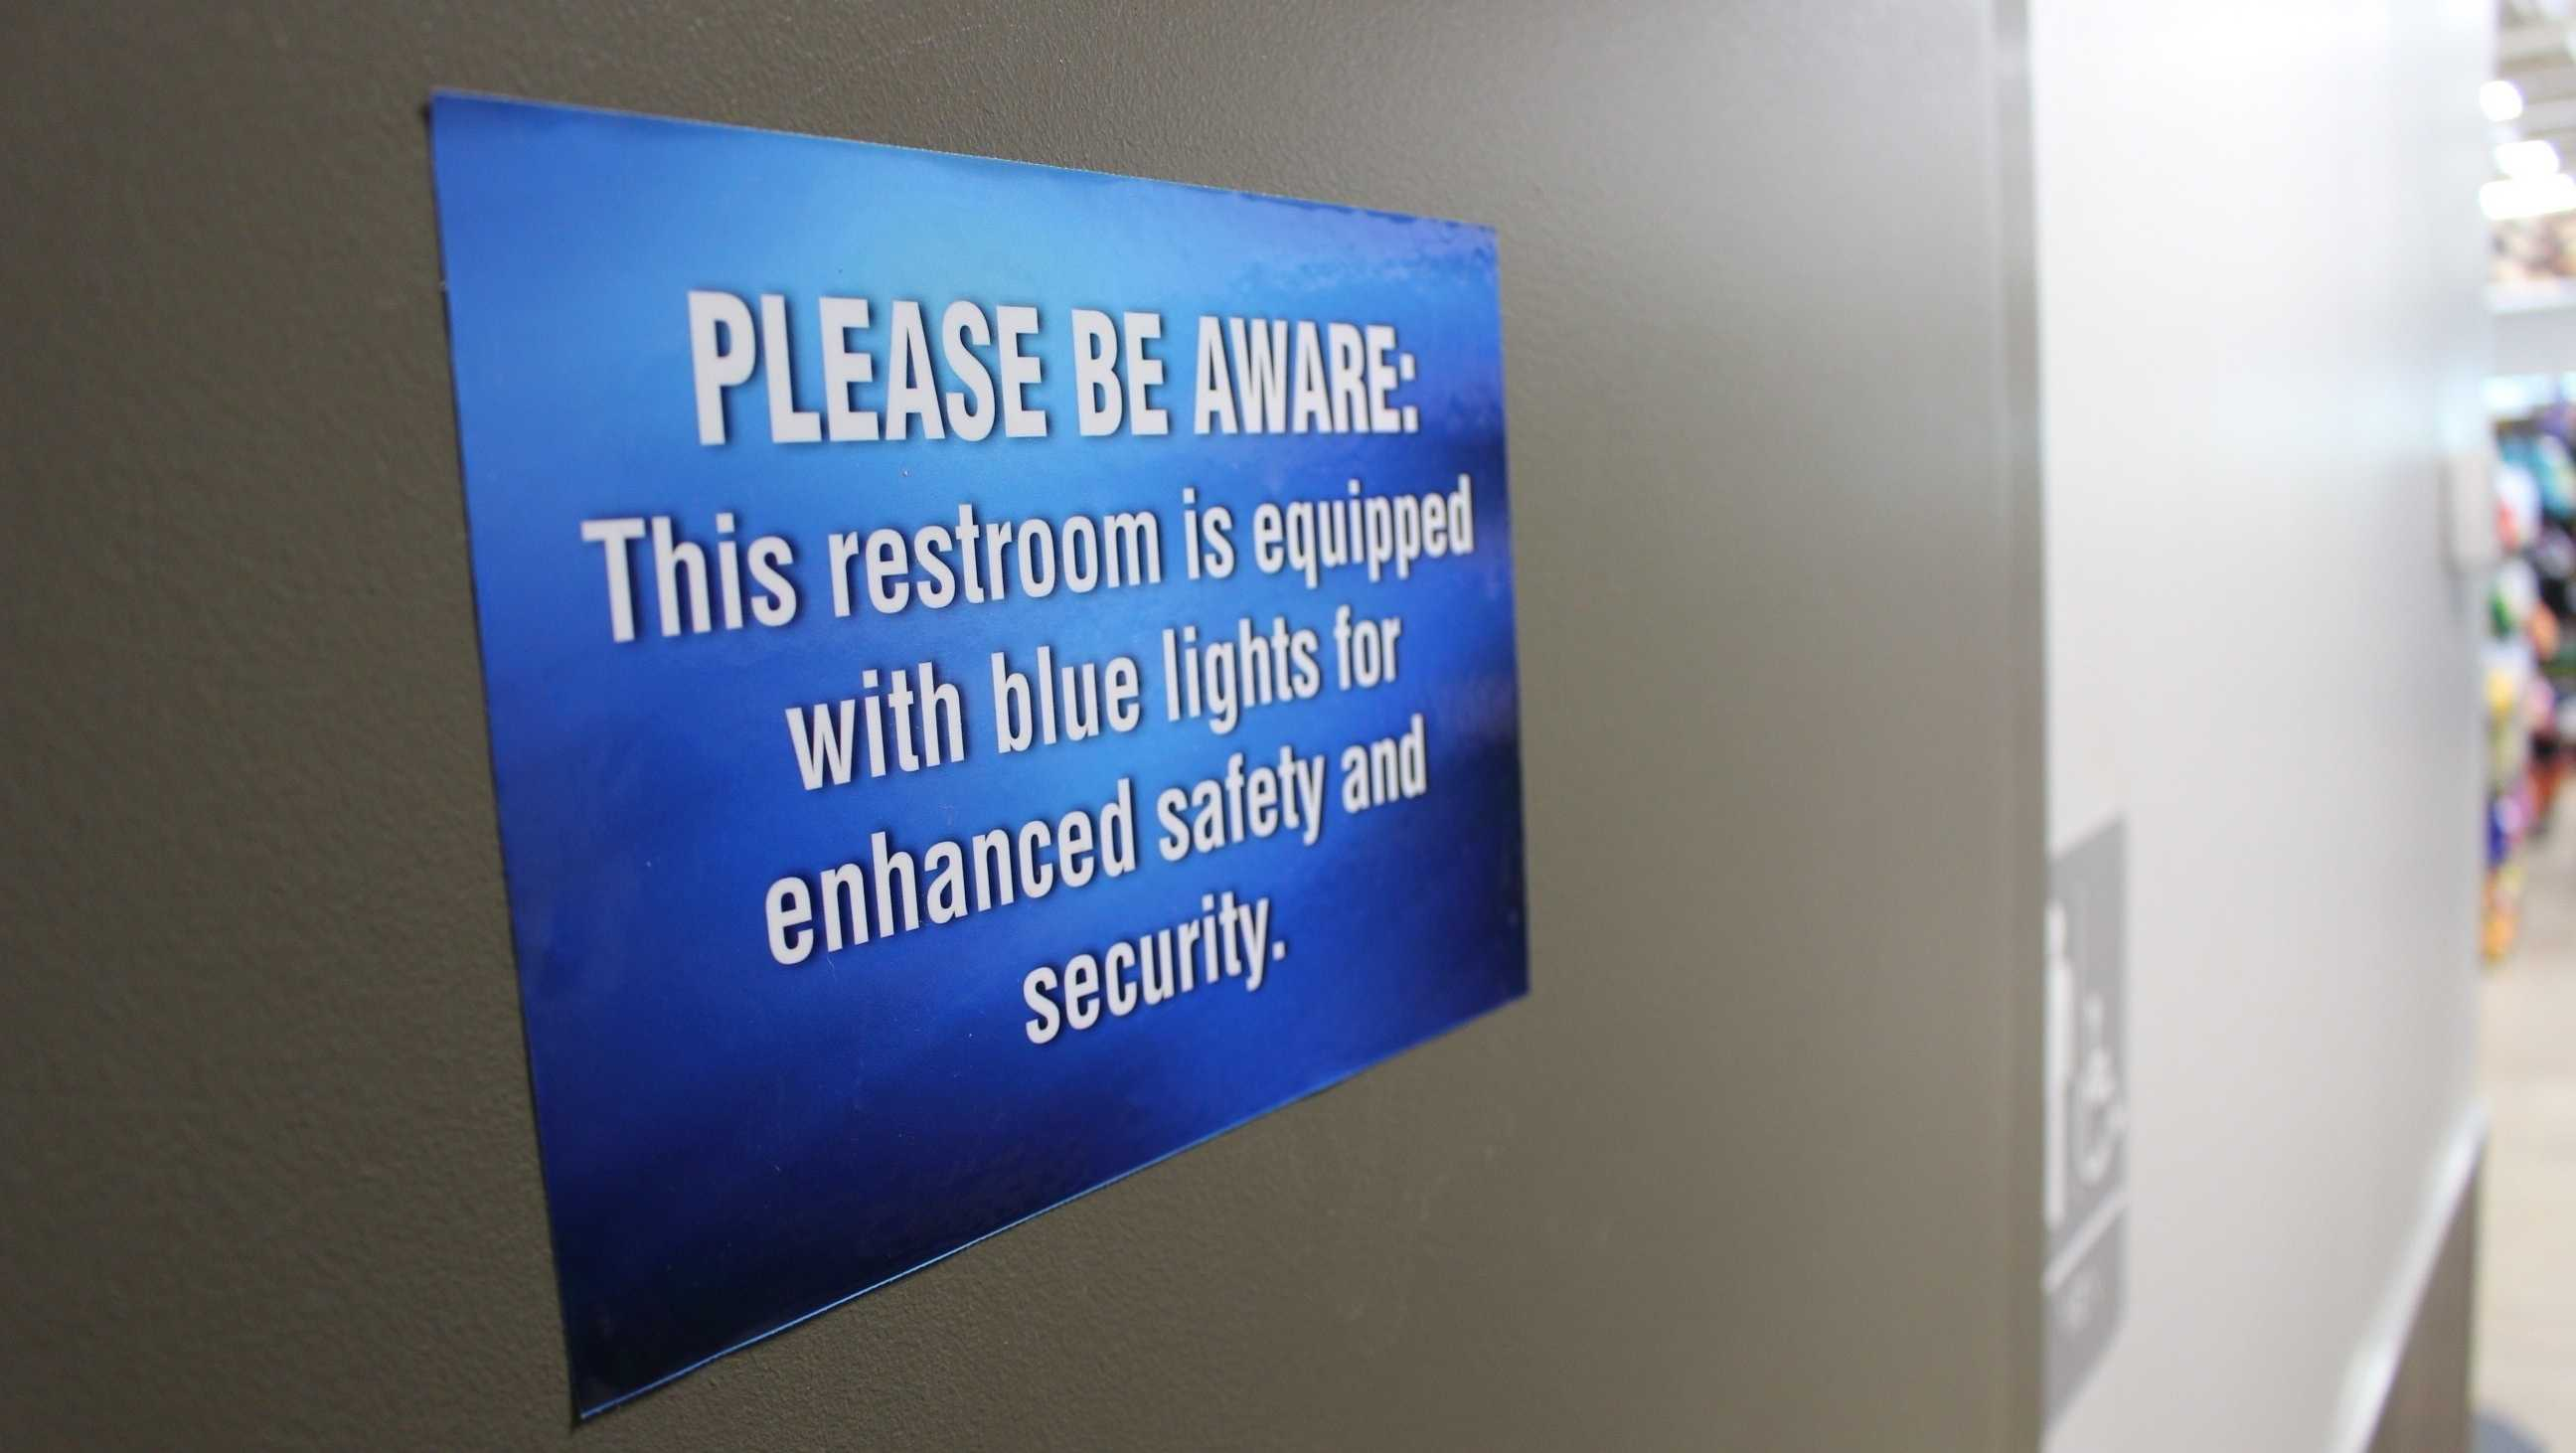 In this June 22, 2018 photo, a sign outside a public bathroom hangs at this Turkey Hill convenience store in Wilkes-Barre, Pa. The chain has installed blue light bulbs in some of its stores in hopes of discouraging drug use by making it harder for people to see their veins.